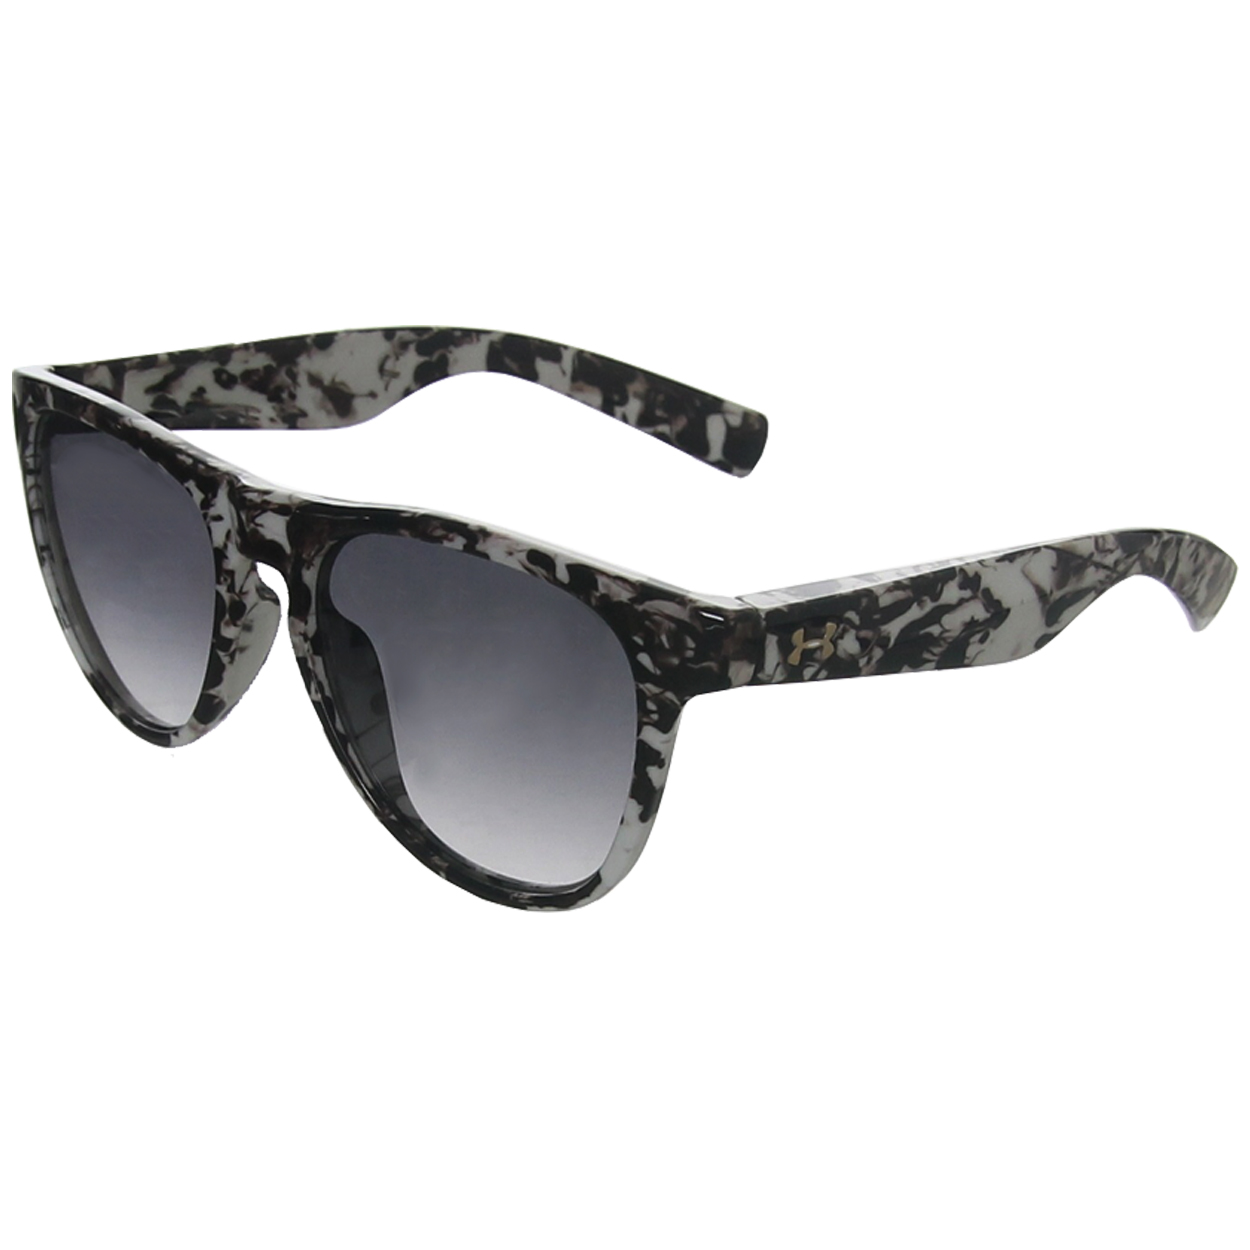 Under Armour Golf Sierra Sunglasses UNDER-ARMOUR-SIERRA-SUNGLASSES